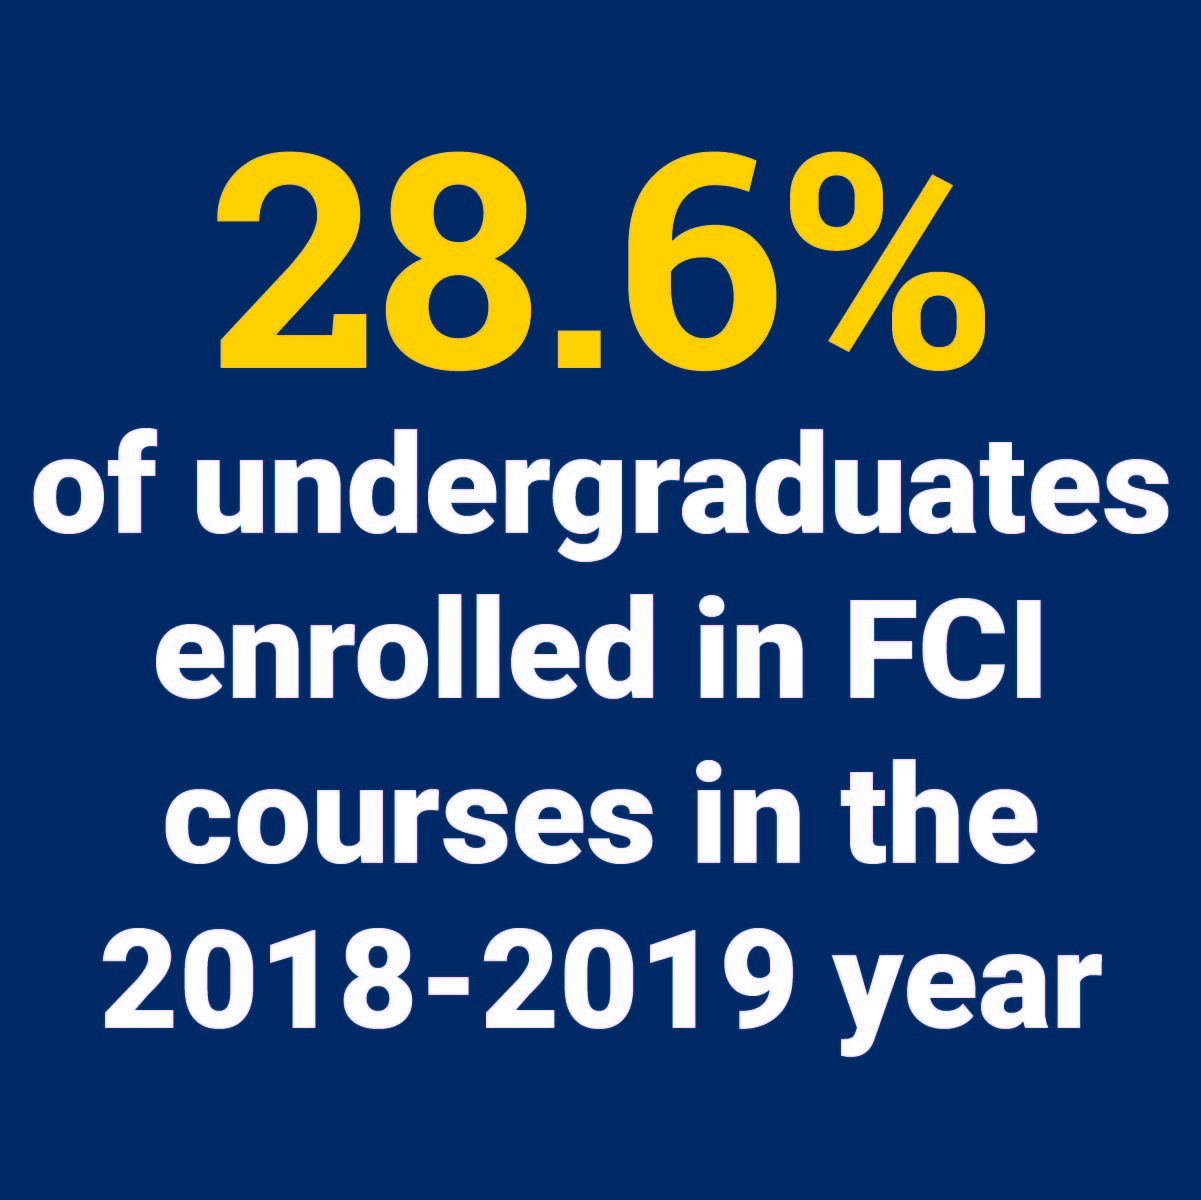 28.6% of undergraduates enrolled in FCI courses in the 2018-2019 year